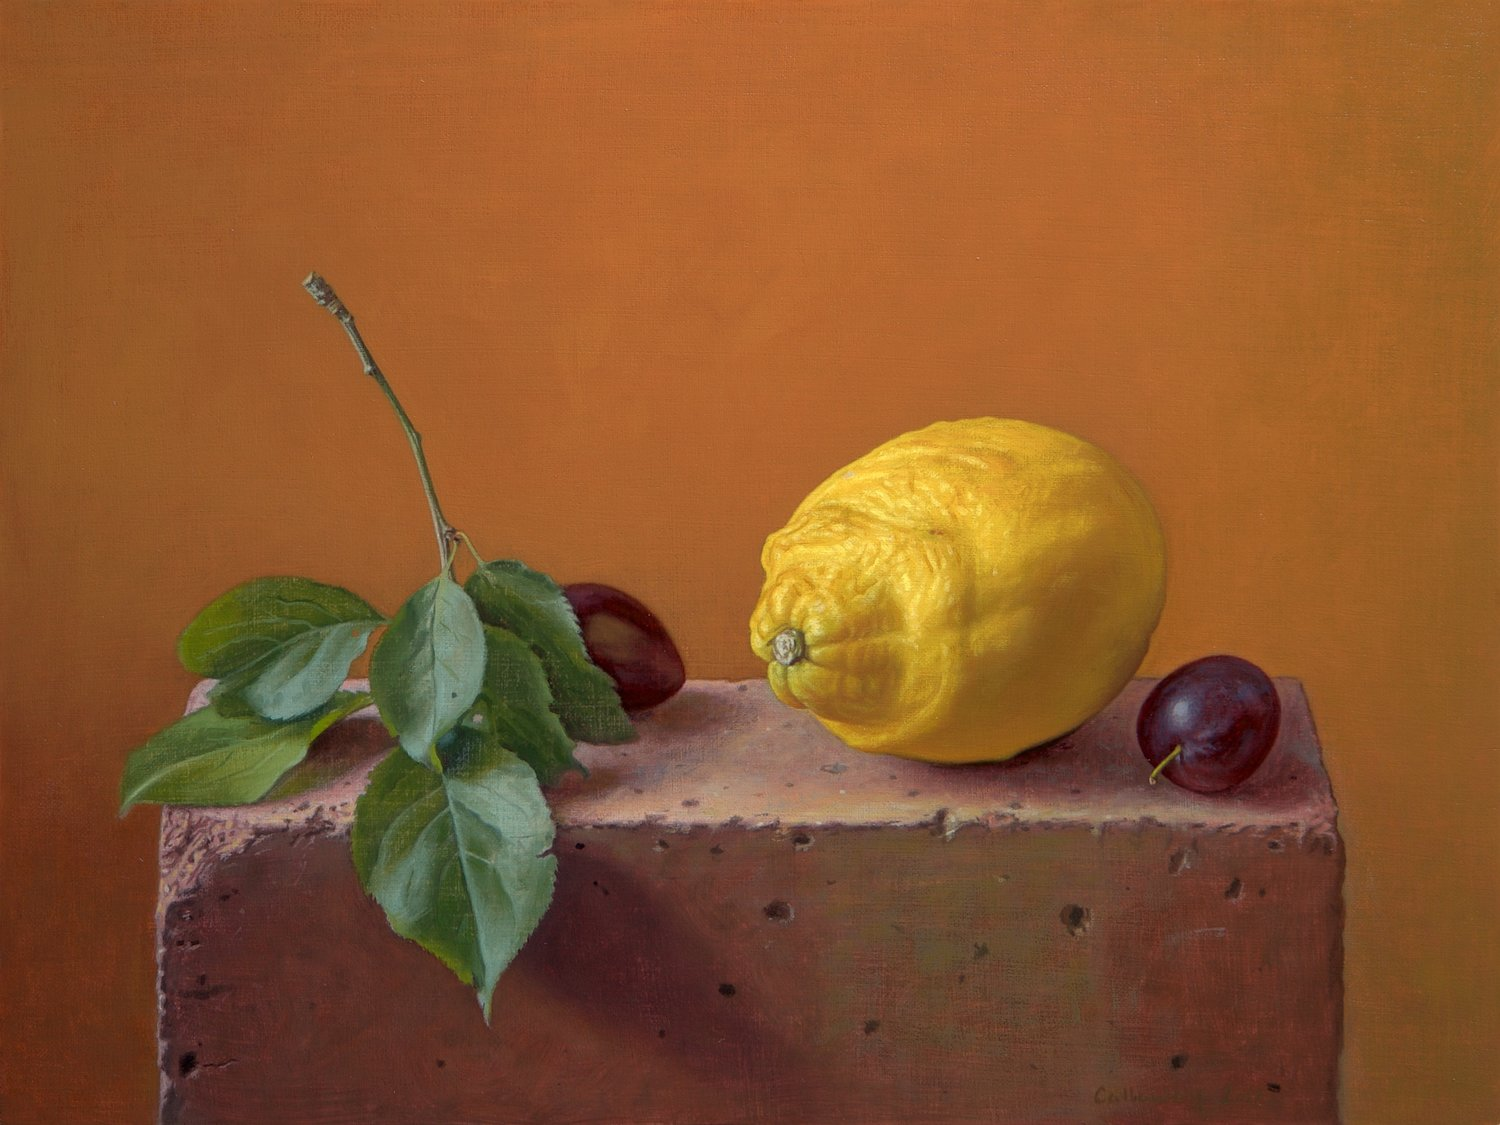 'Lemon with Damsons on a Brick', Alex Callaway, Oil, 30 x 40 x 0.5 cm